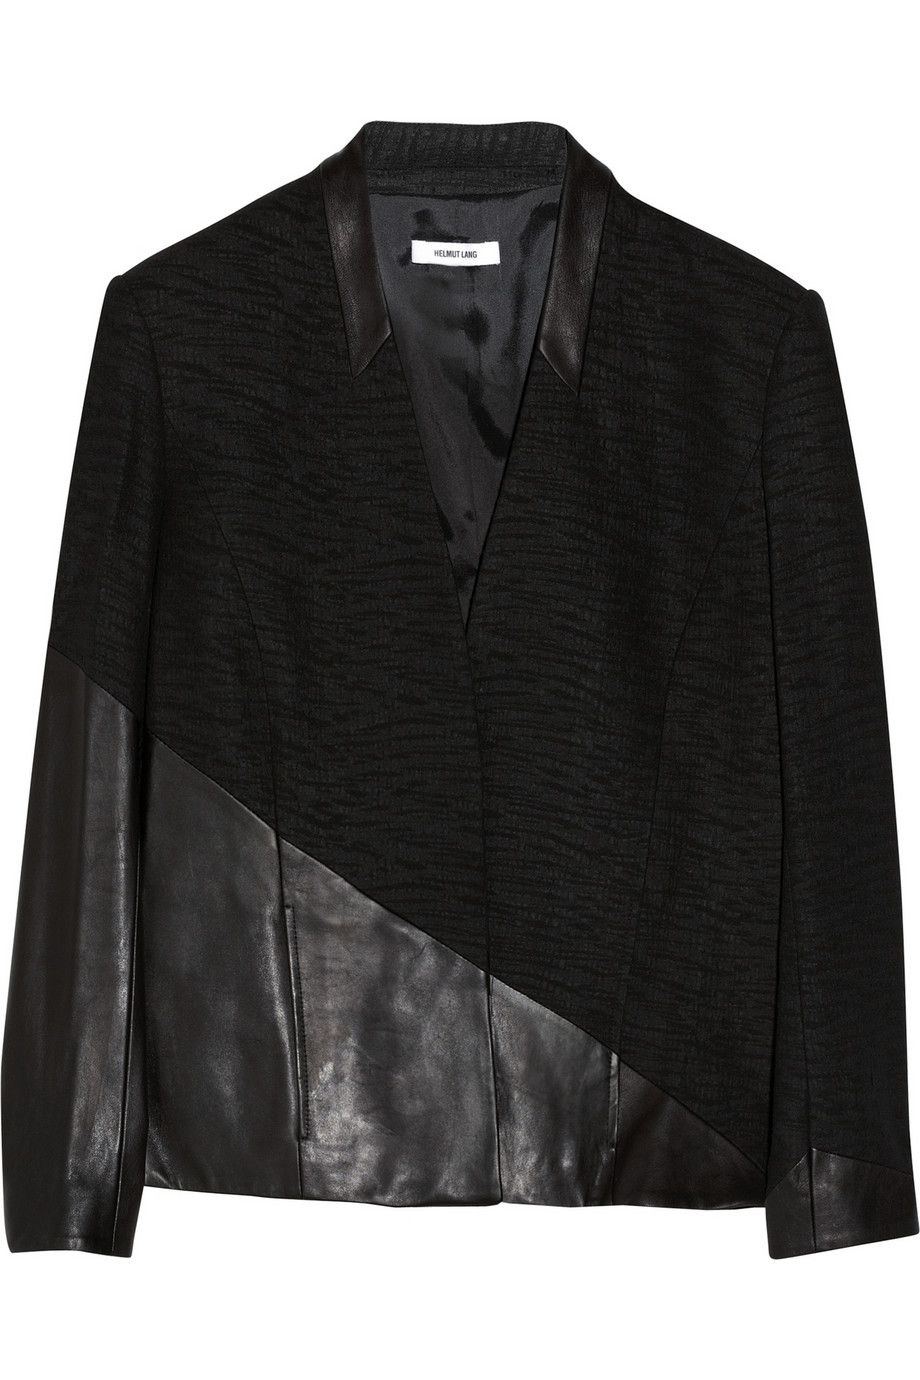 Helmut Lang Asymmetric Leather Trimmed Jacquard Jacket Jackets Discount Designer Clothes Helmut Lang